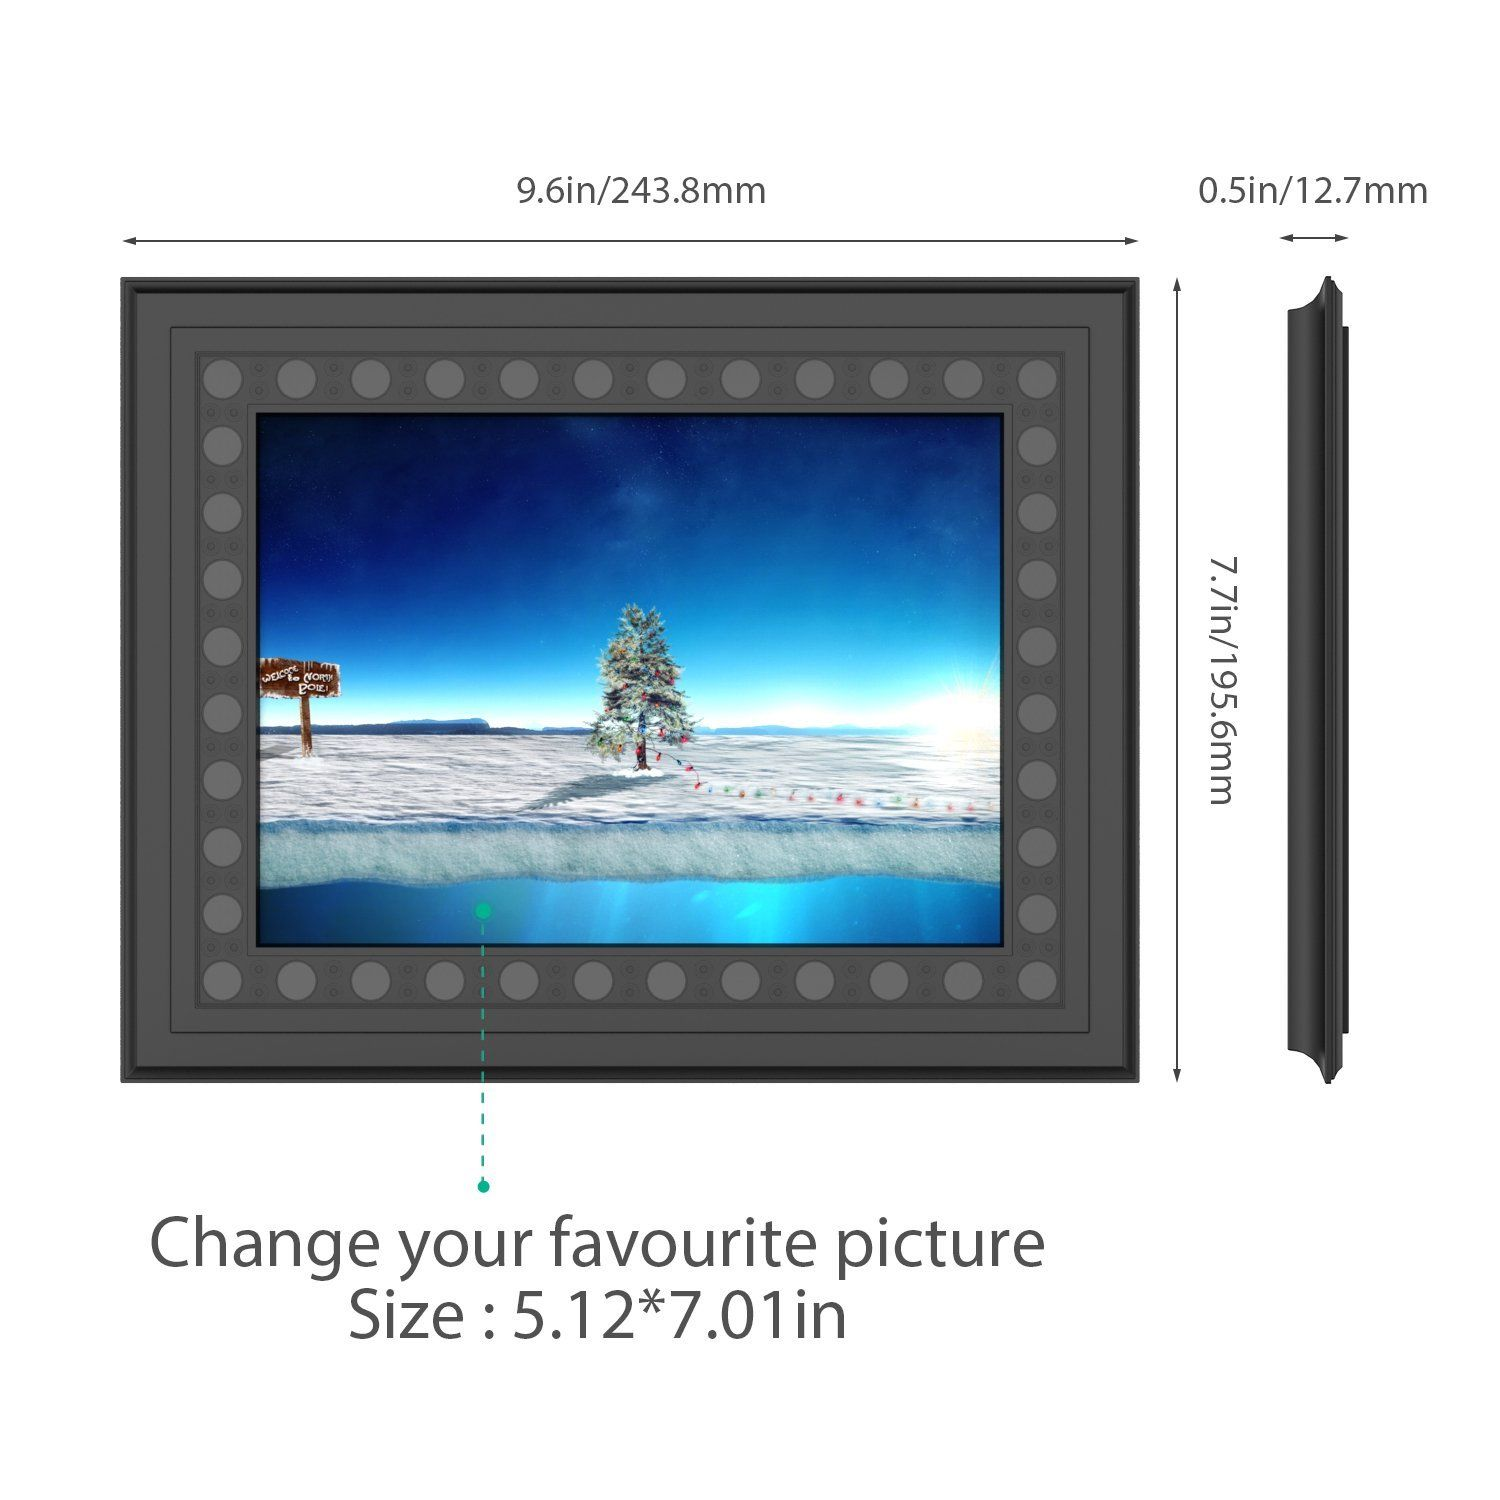 HD 720P Photo Frame Hidden Spy Camera - Dimension